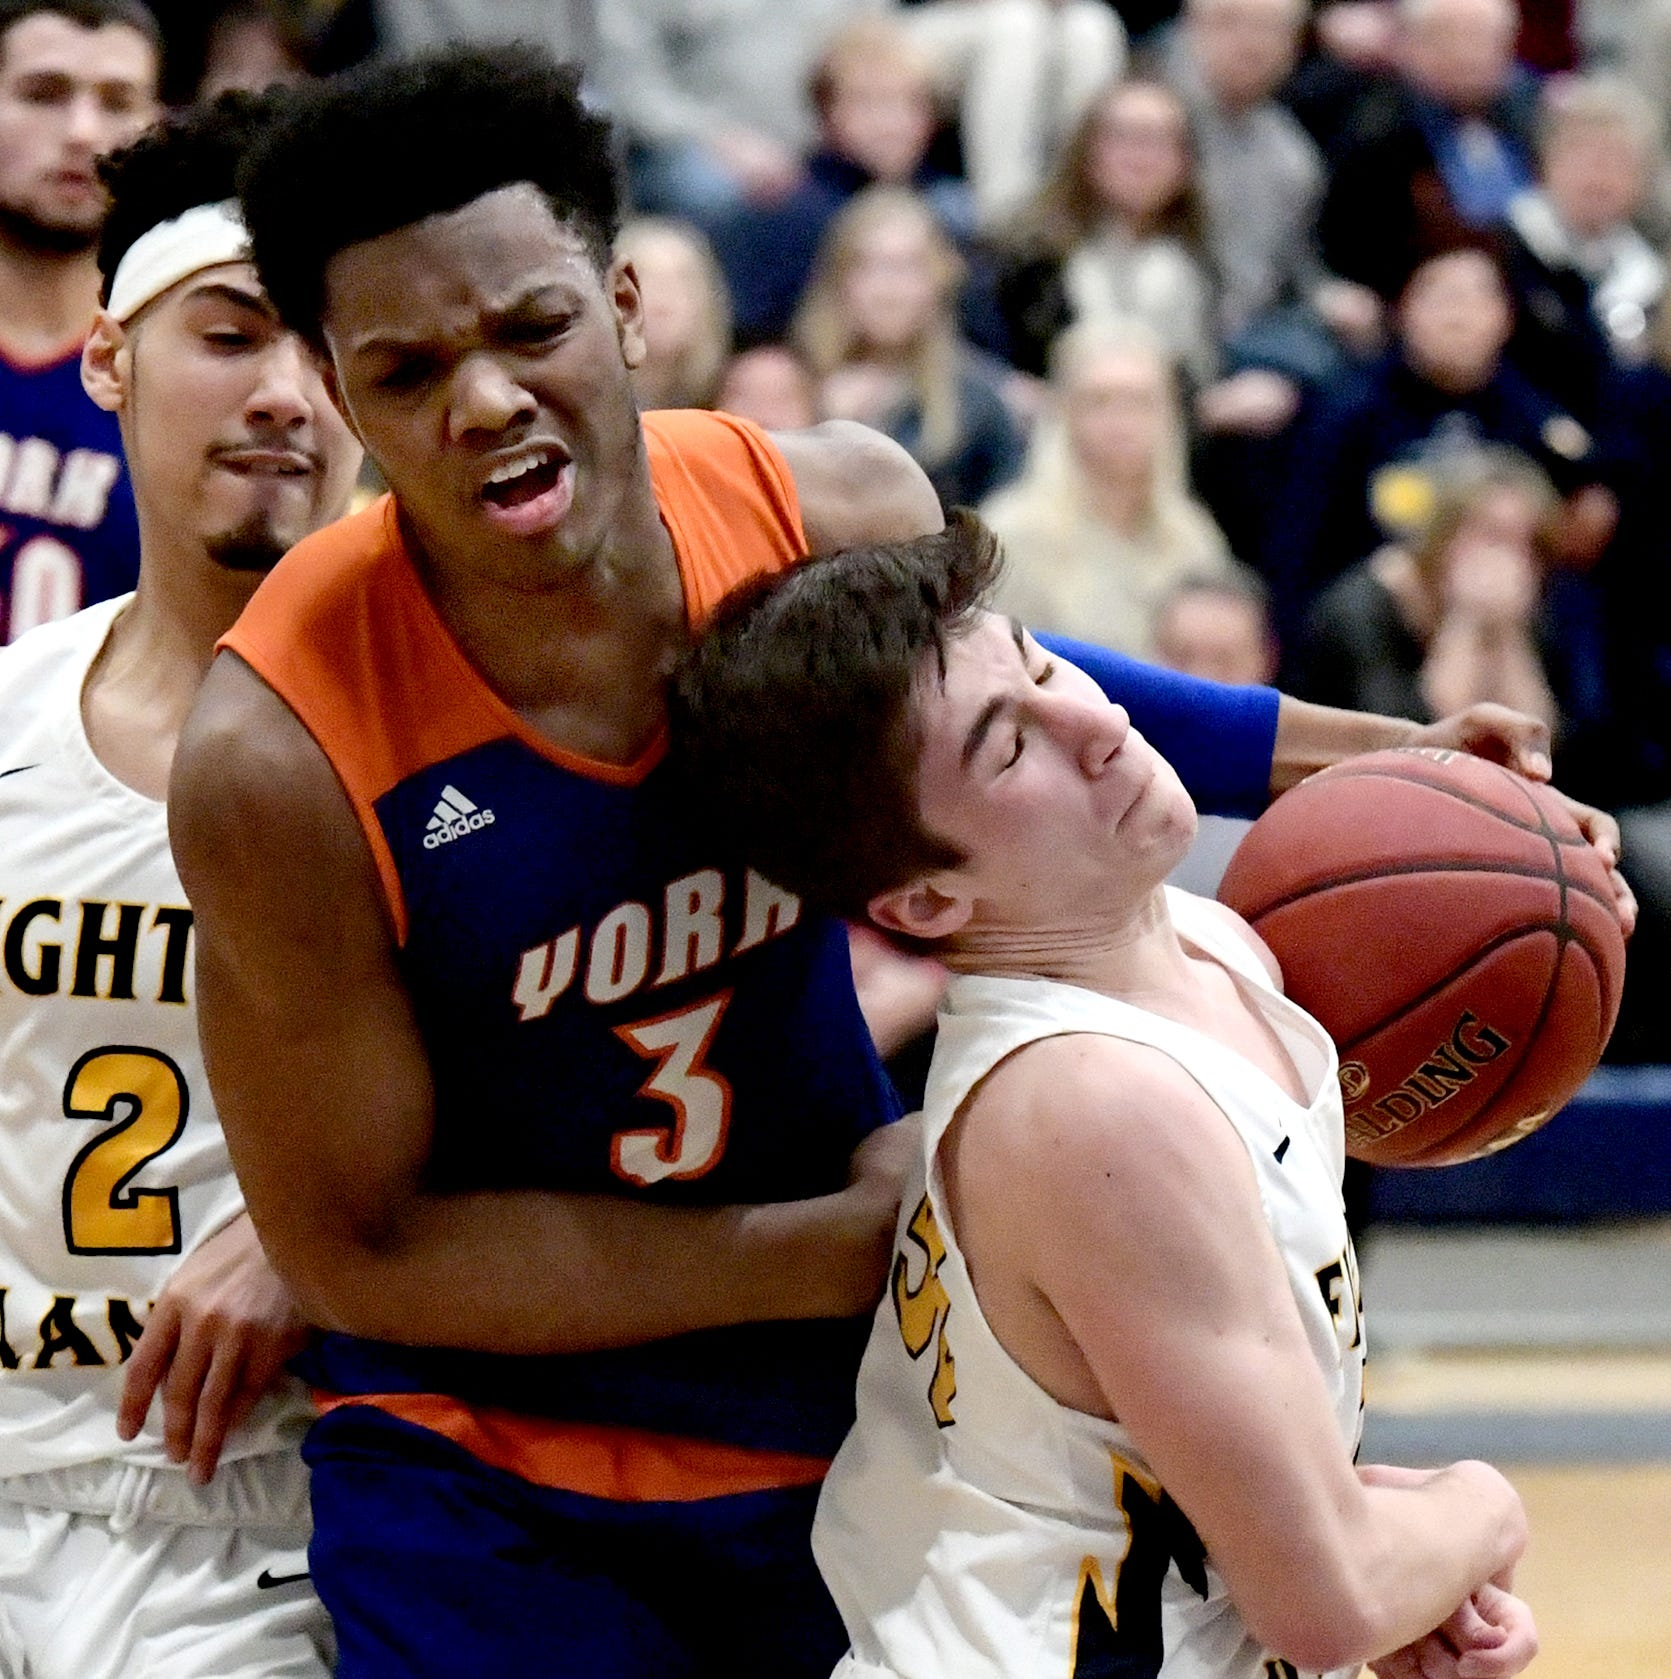 York High boys' basketball team sees season end with one-point PIAA loss to Mars